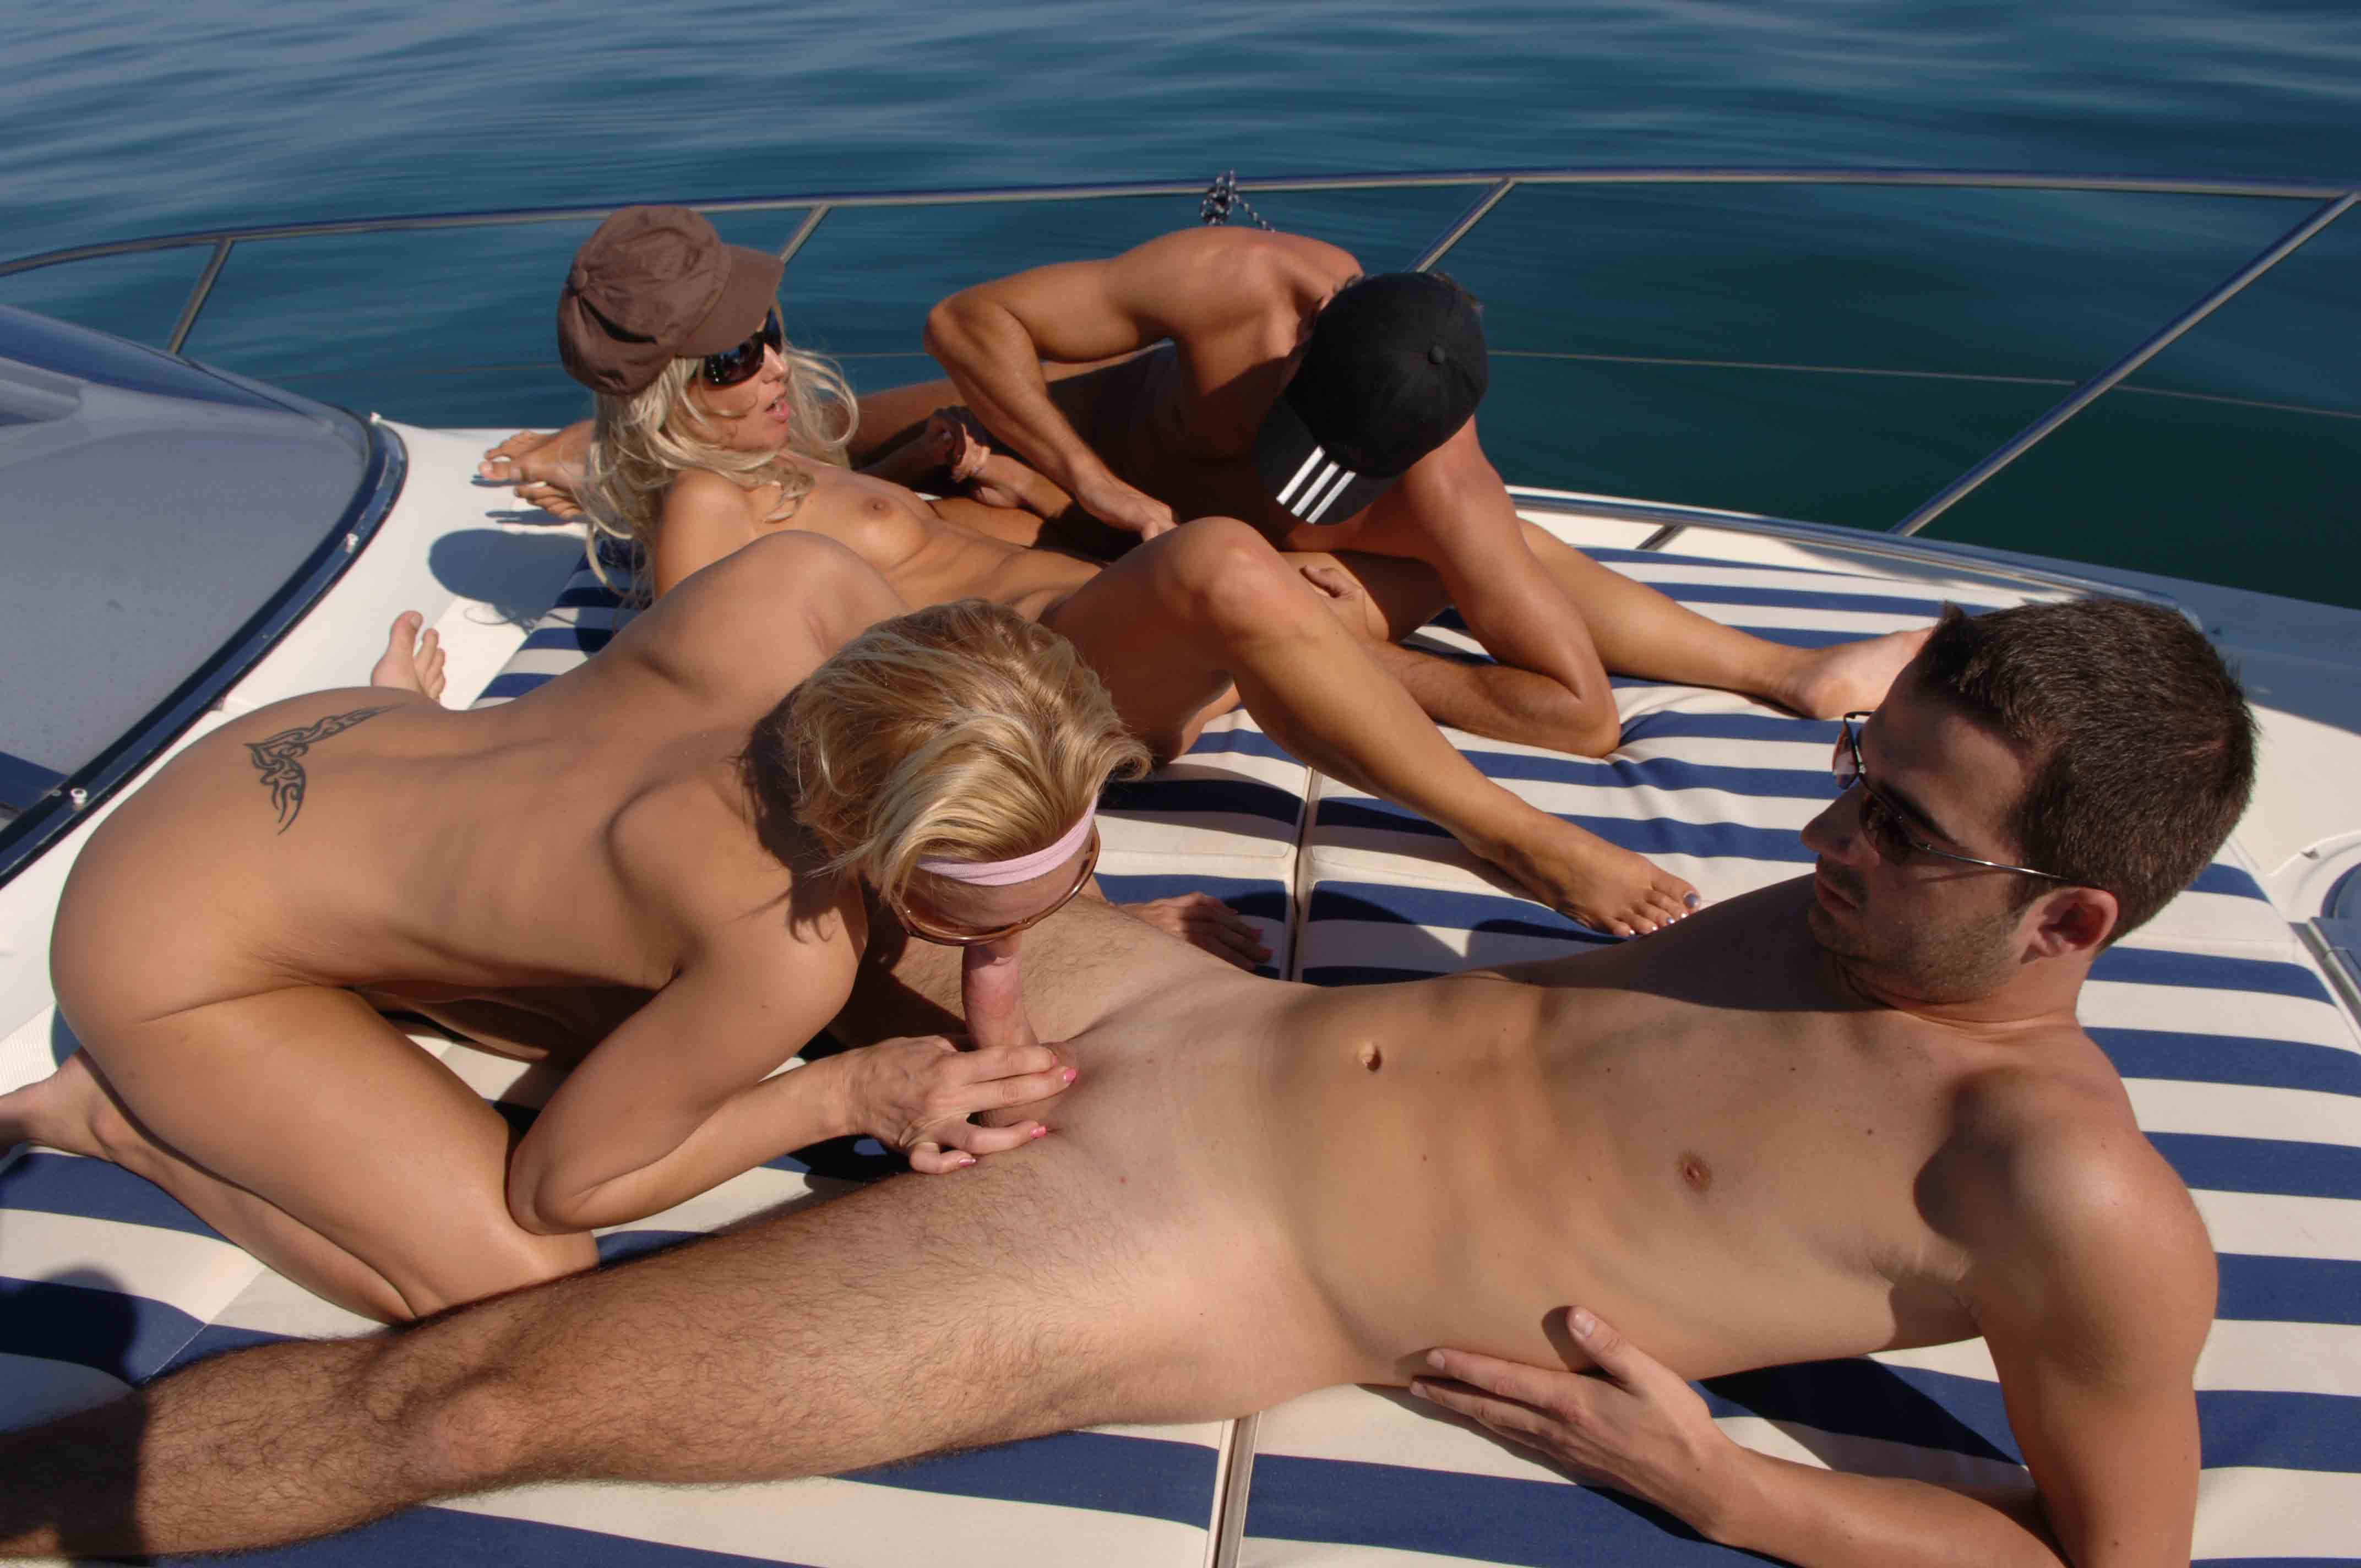 girl fucking on a boat